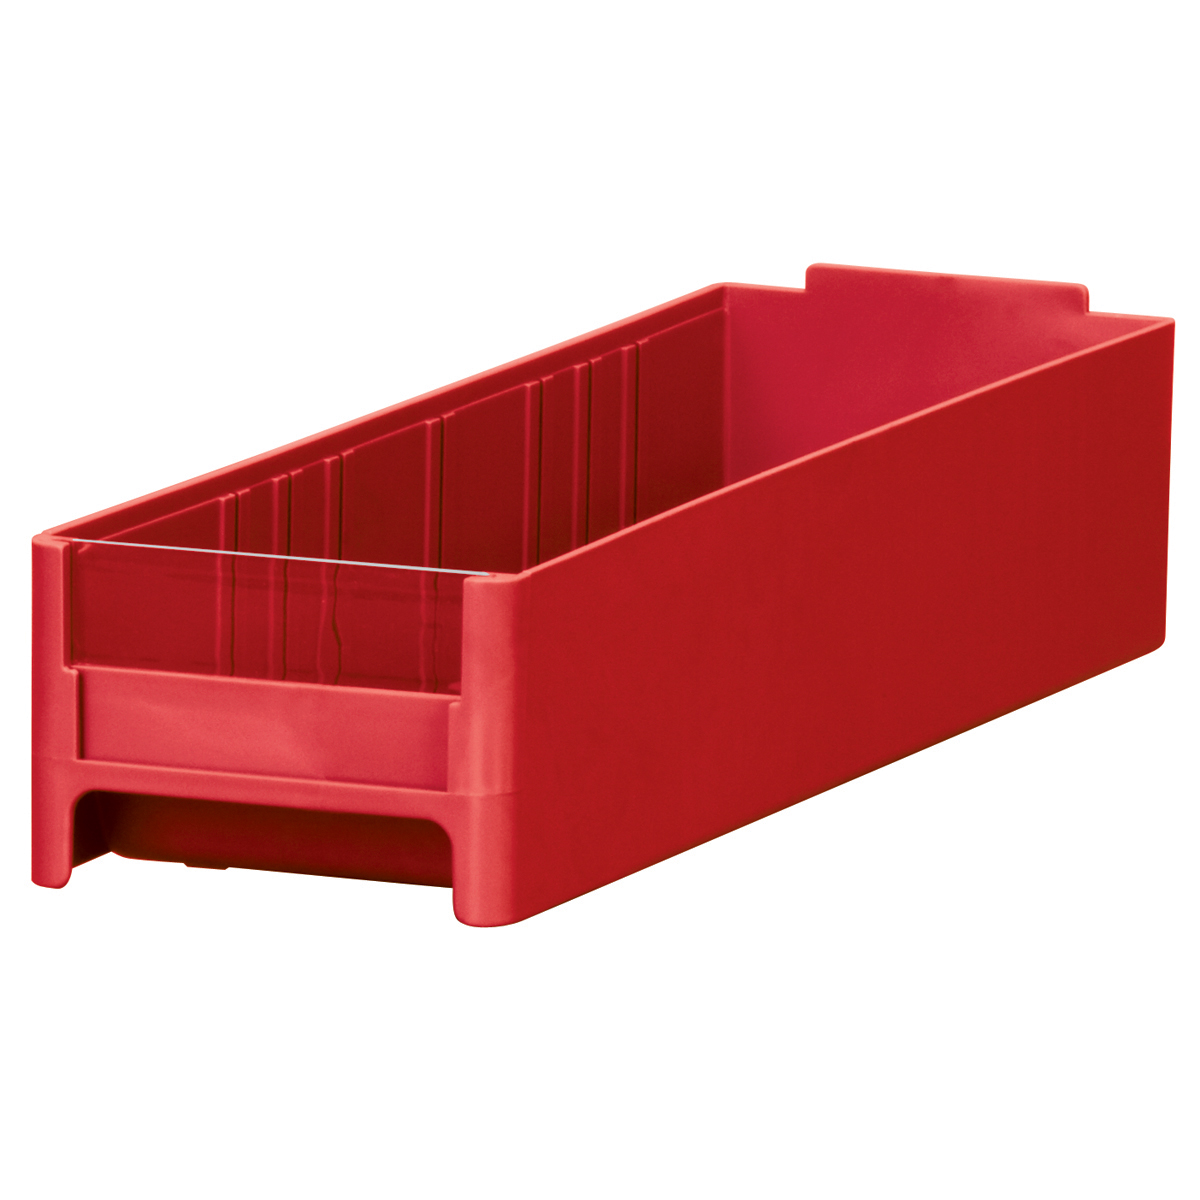 19-Series Cabinet Drawer 3-3/16 x 2-1/16 x 10-9/16, Red.  This item sold in carton quantities of 40.